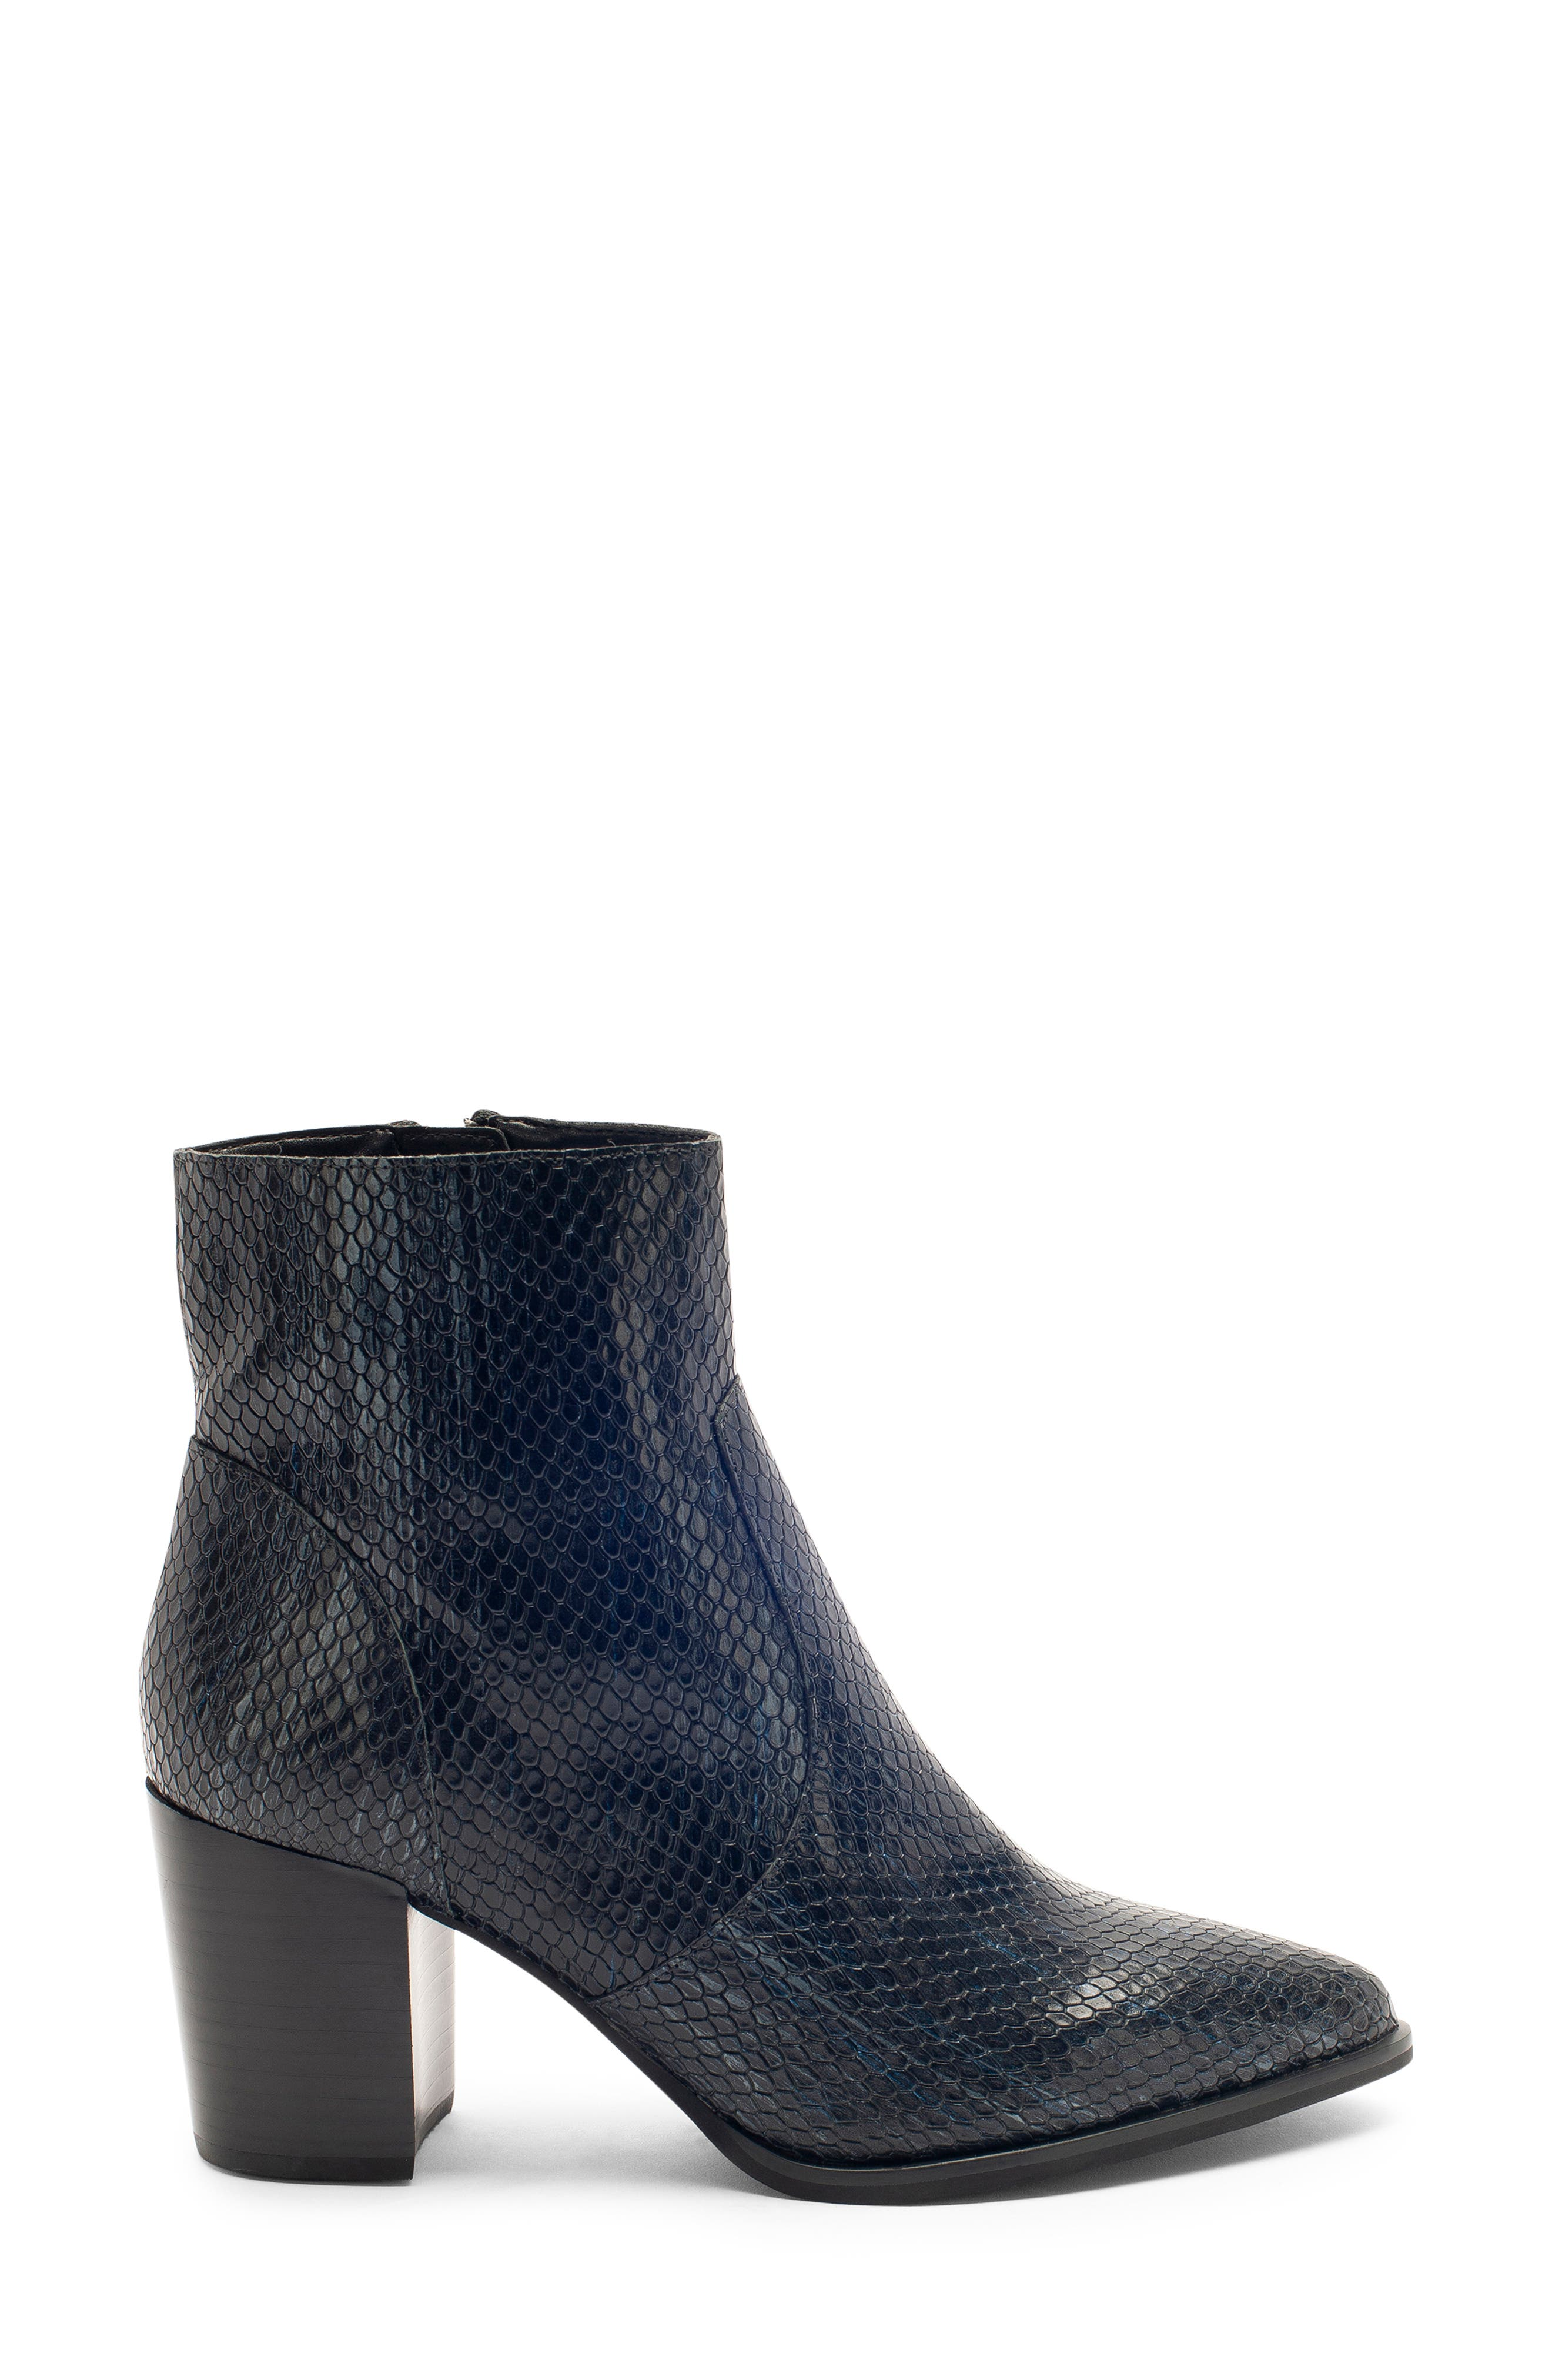 Tania Waterproof Bootie,                             Alternate thumbnail 3, color,                             BLACK SNAKE LEATHER